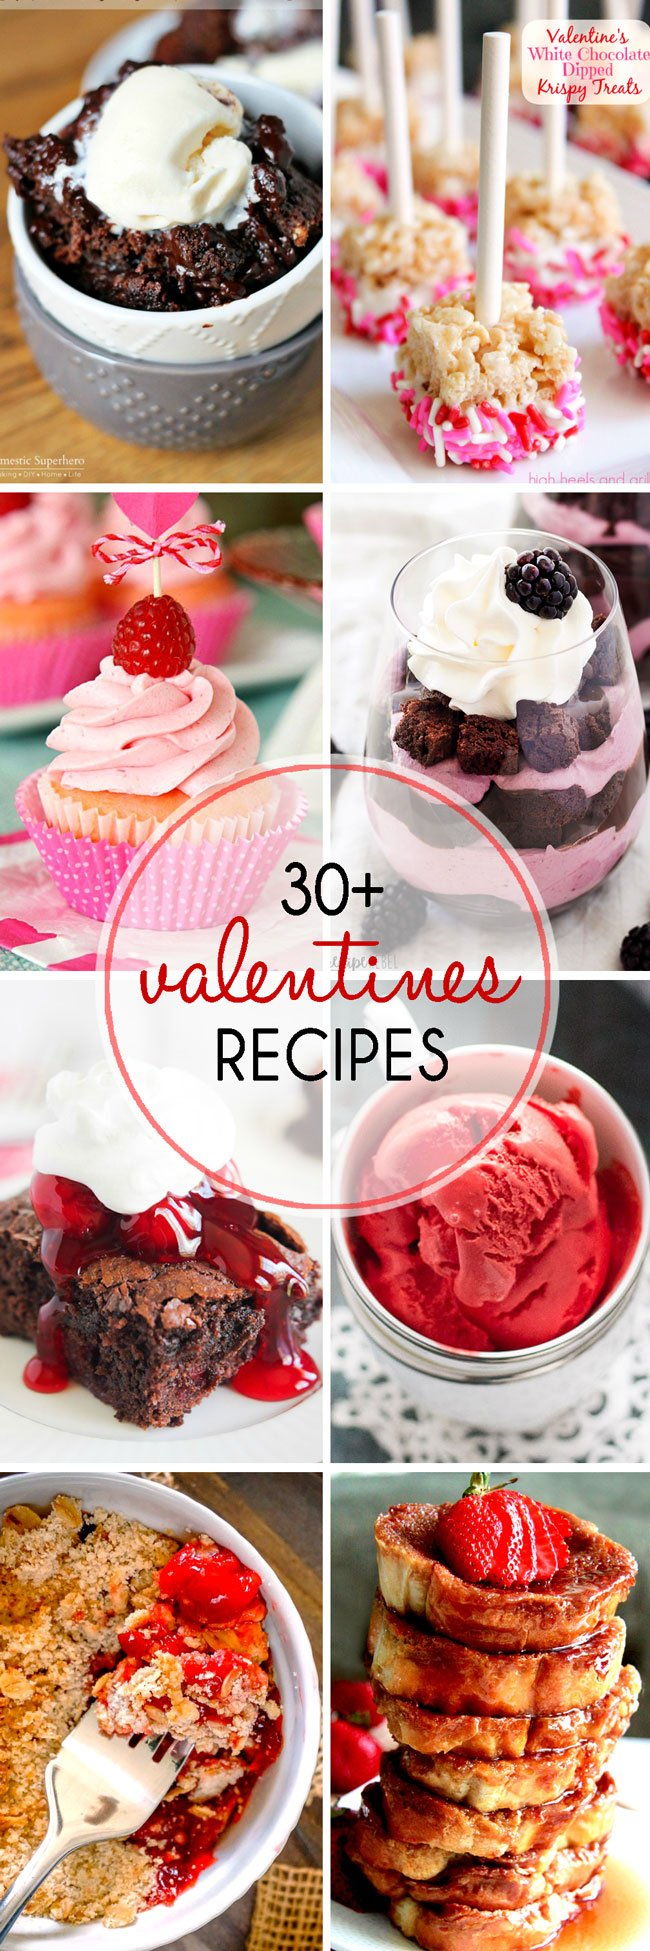 30+ Valentine's Recipes - everything from breakfast to dessert! These recipes are sure to please your sweetie!